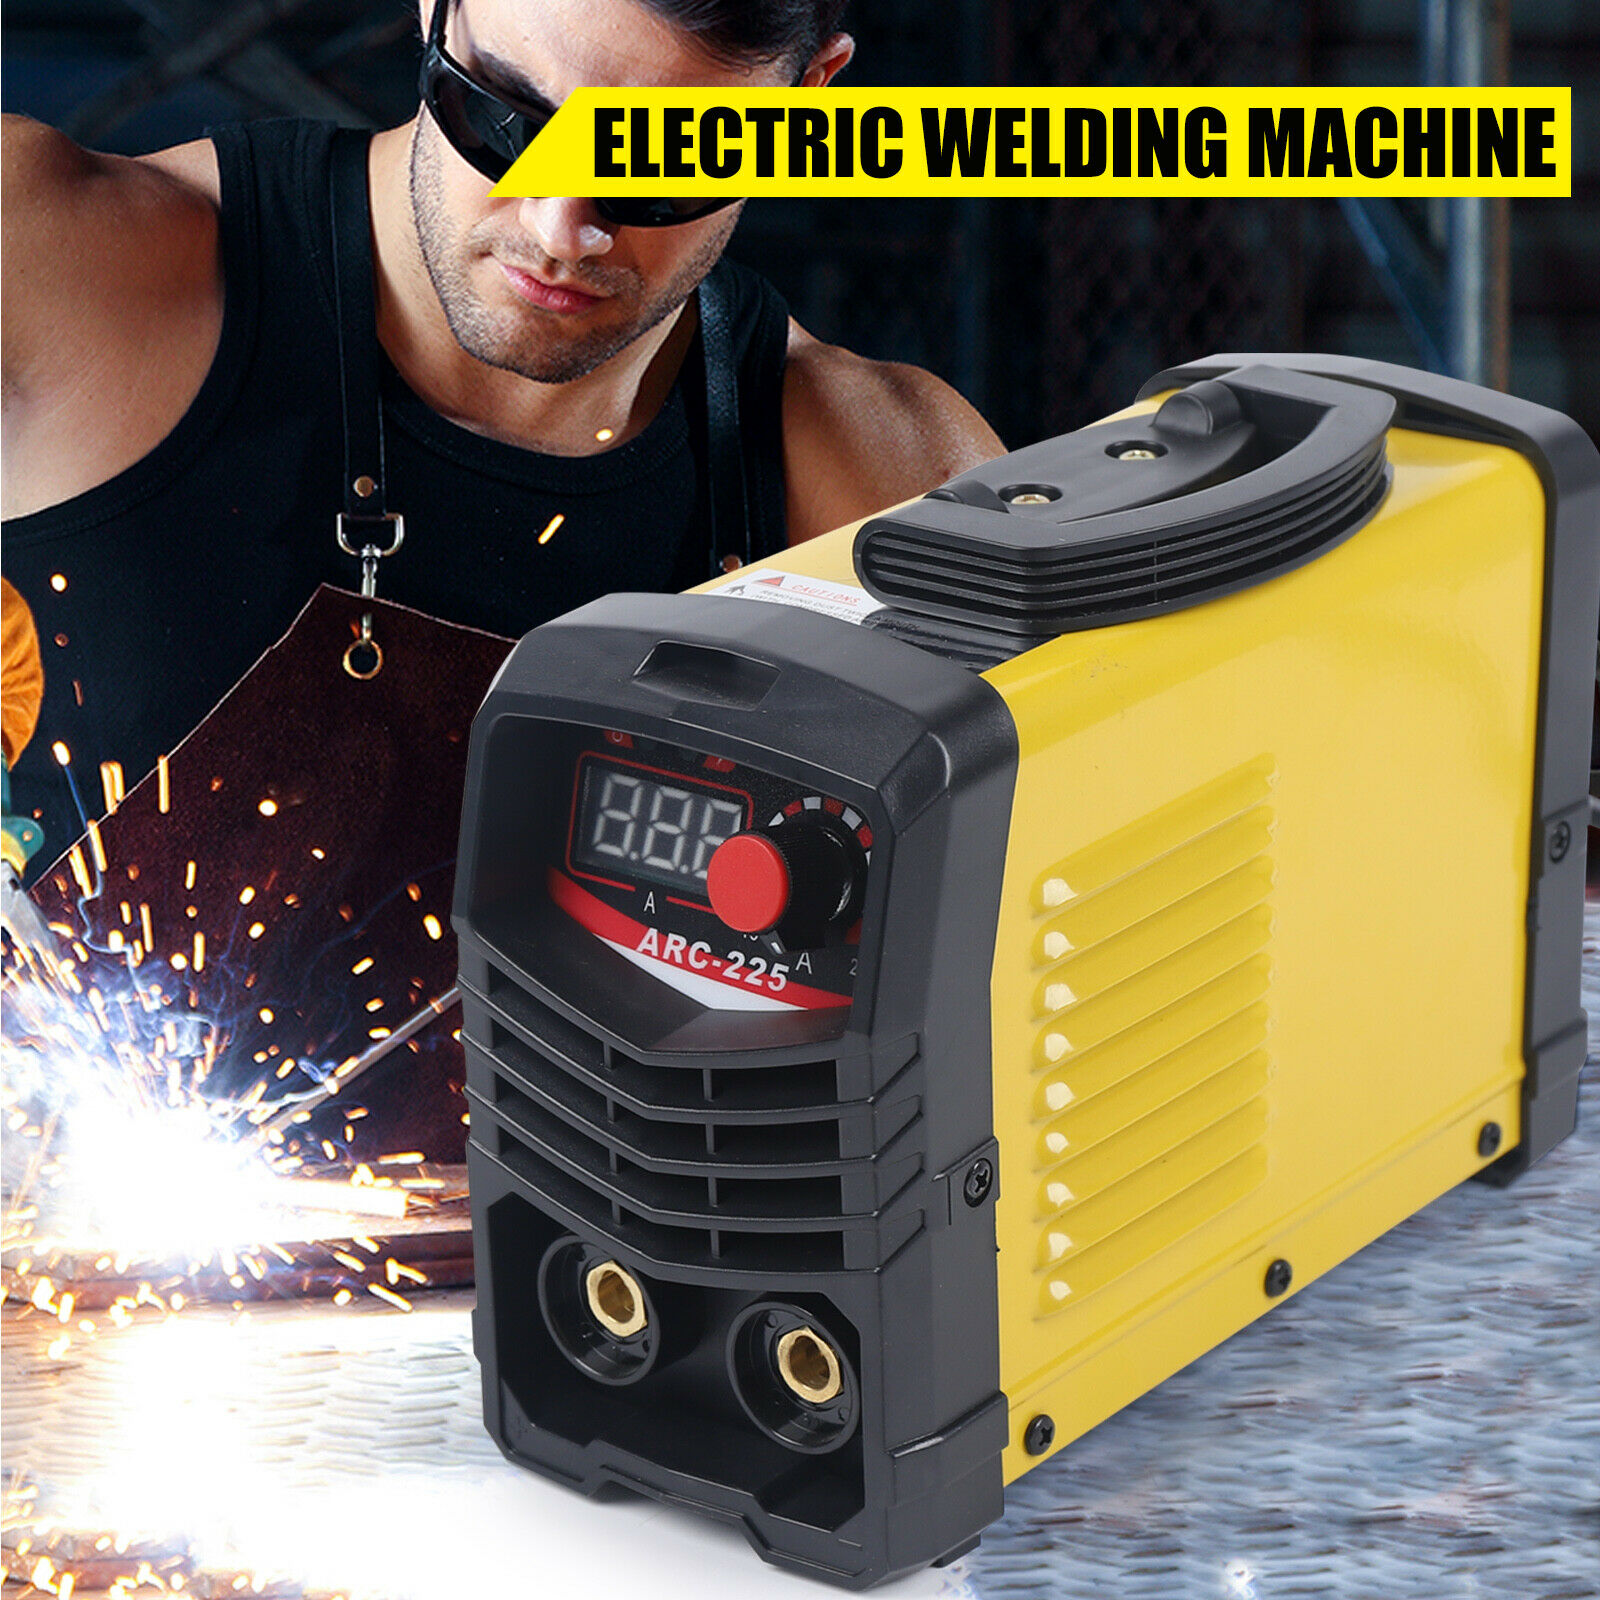 Electric Welder LCD Display IGBT Inverter Welding Machine 10-225A Adjustable USA. Available Now for 73.00